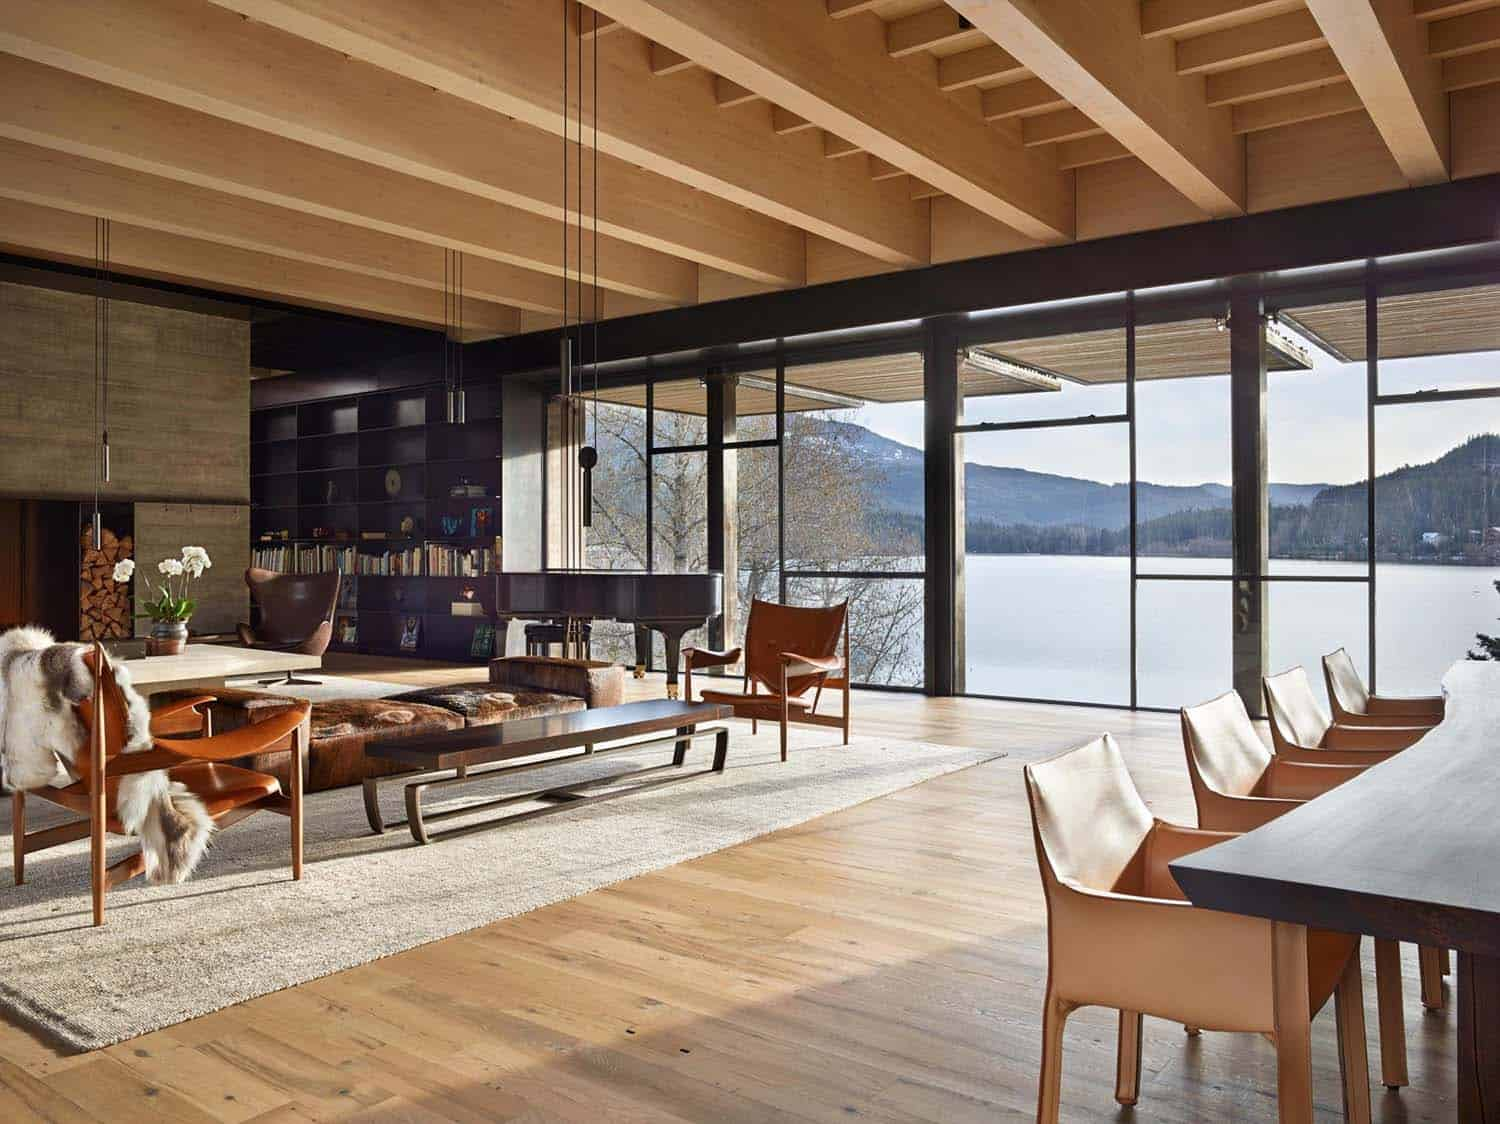 Mountain Ski Retreat-Olson Kundig Architects-12-1 Kindesign